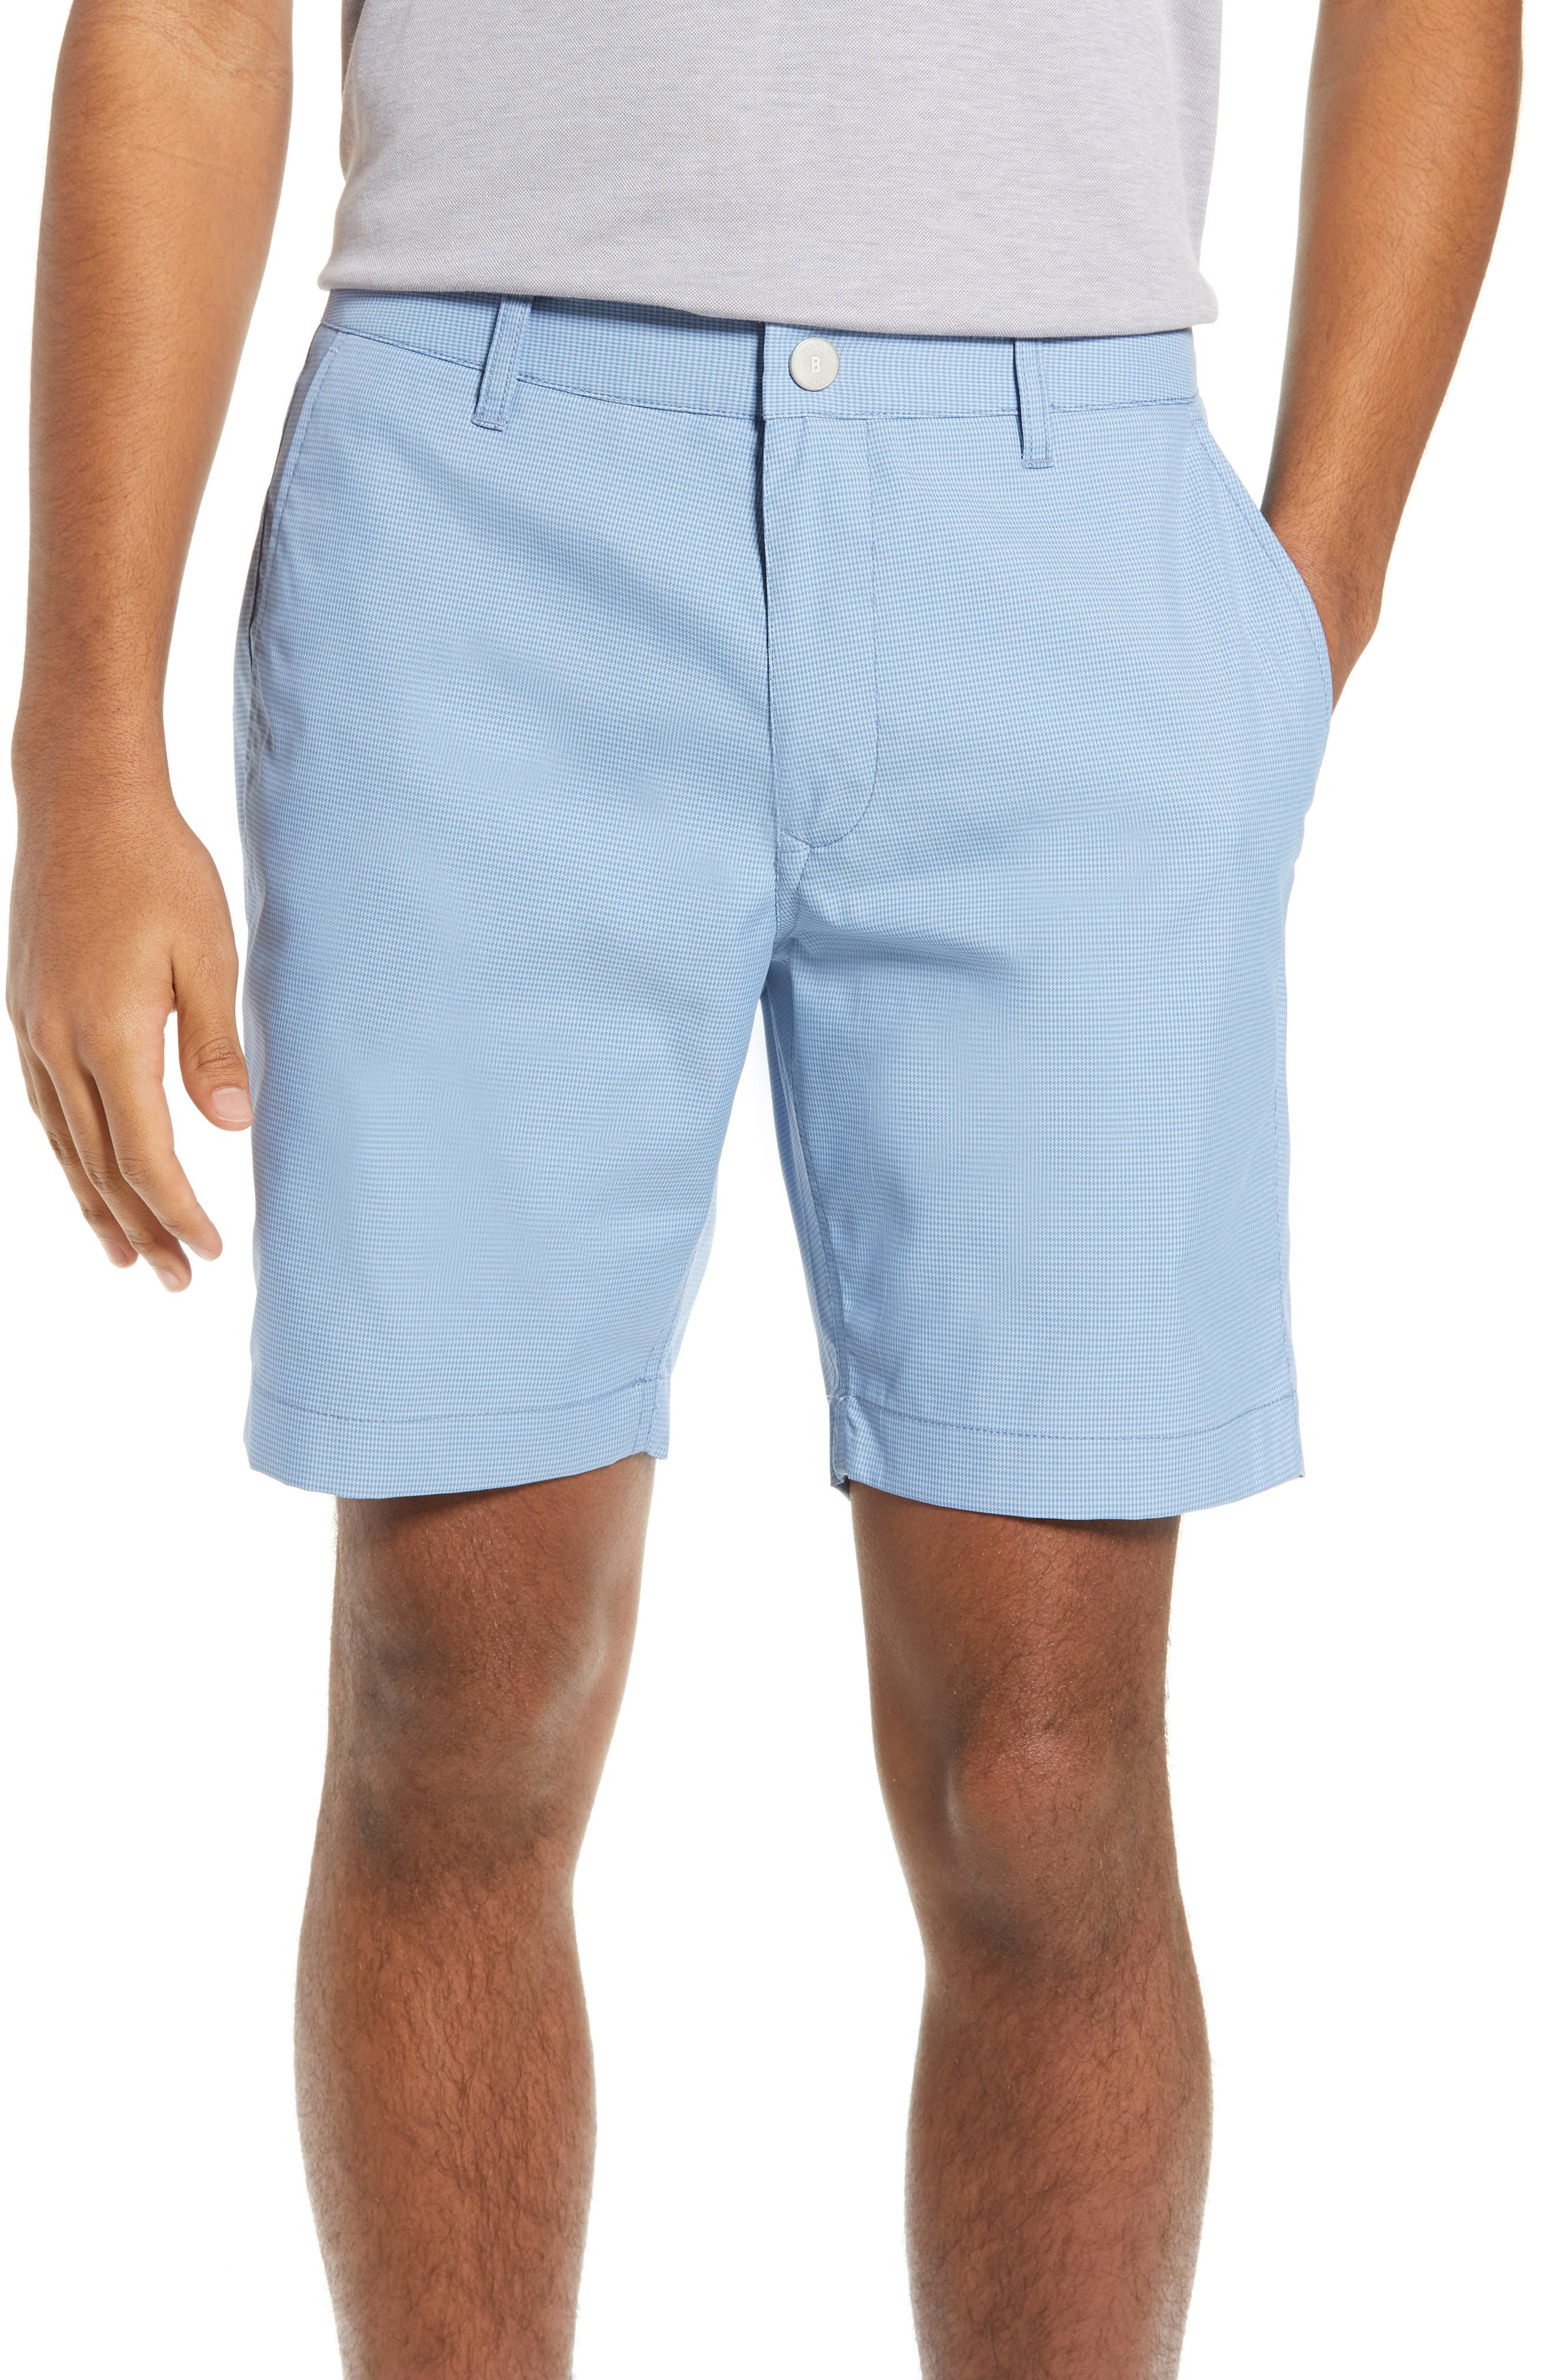 BONOBOS The Highland Micro Houndstooth Golf Shorts, Main, color, BLUE MINICHECK C3